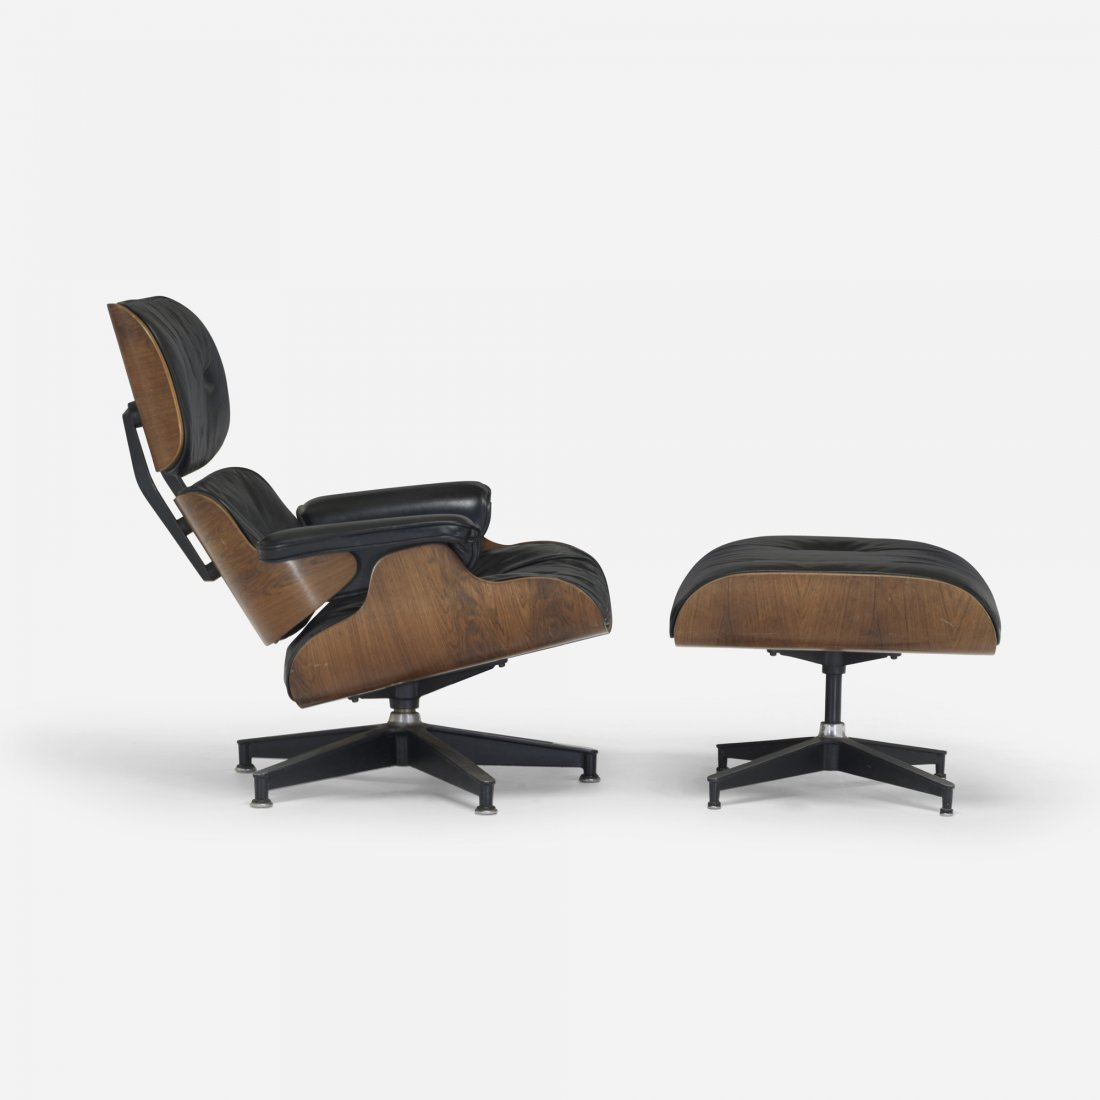 197: Charles and Ray Eames 670 lounge and 671 ottoman